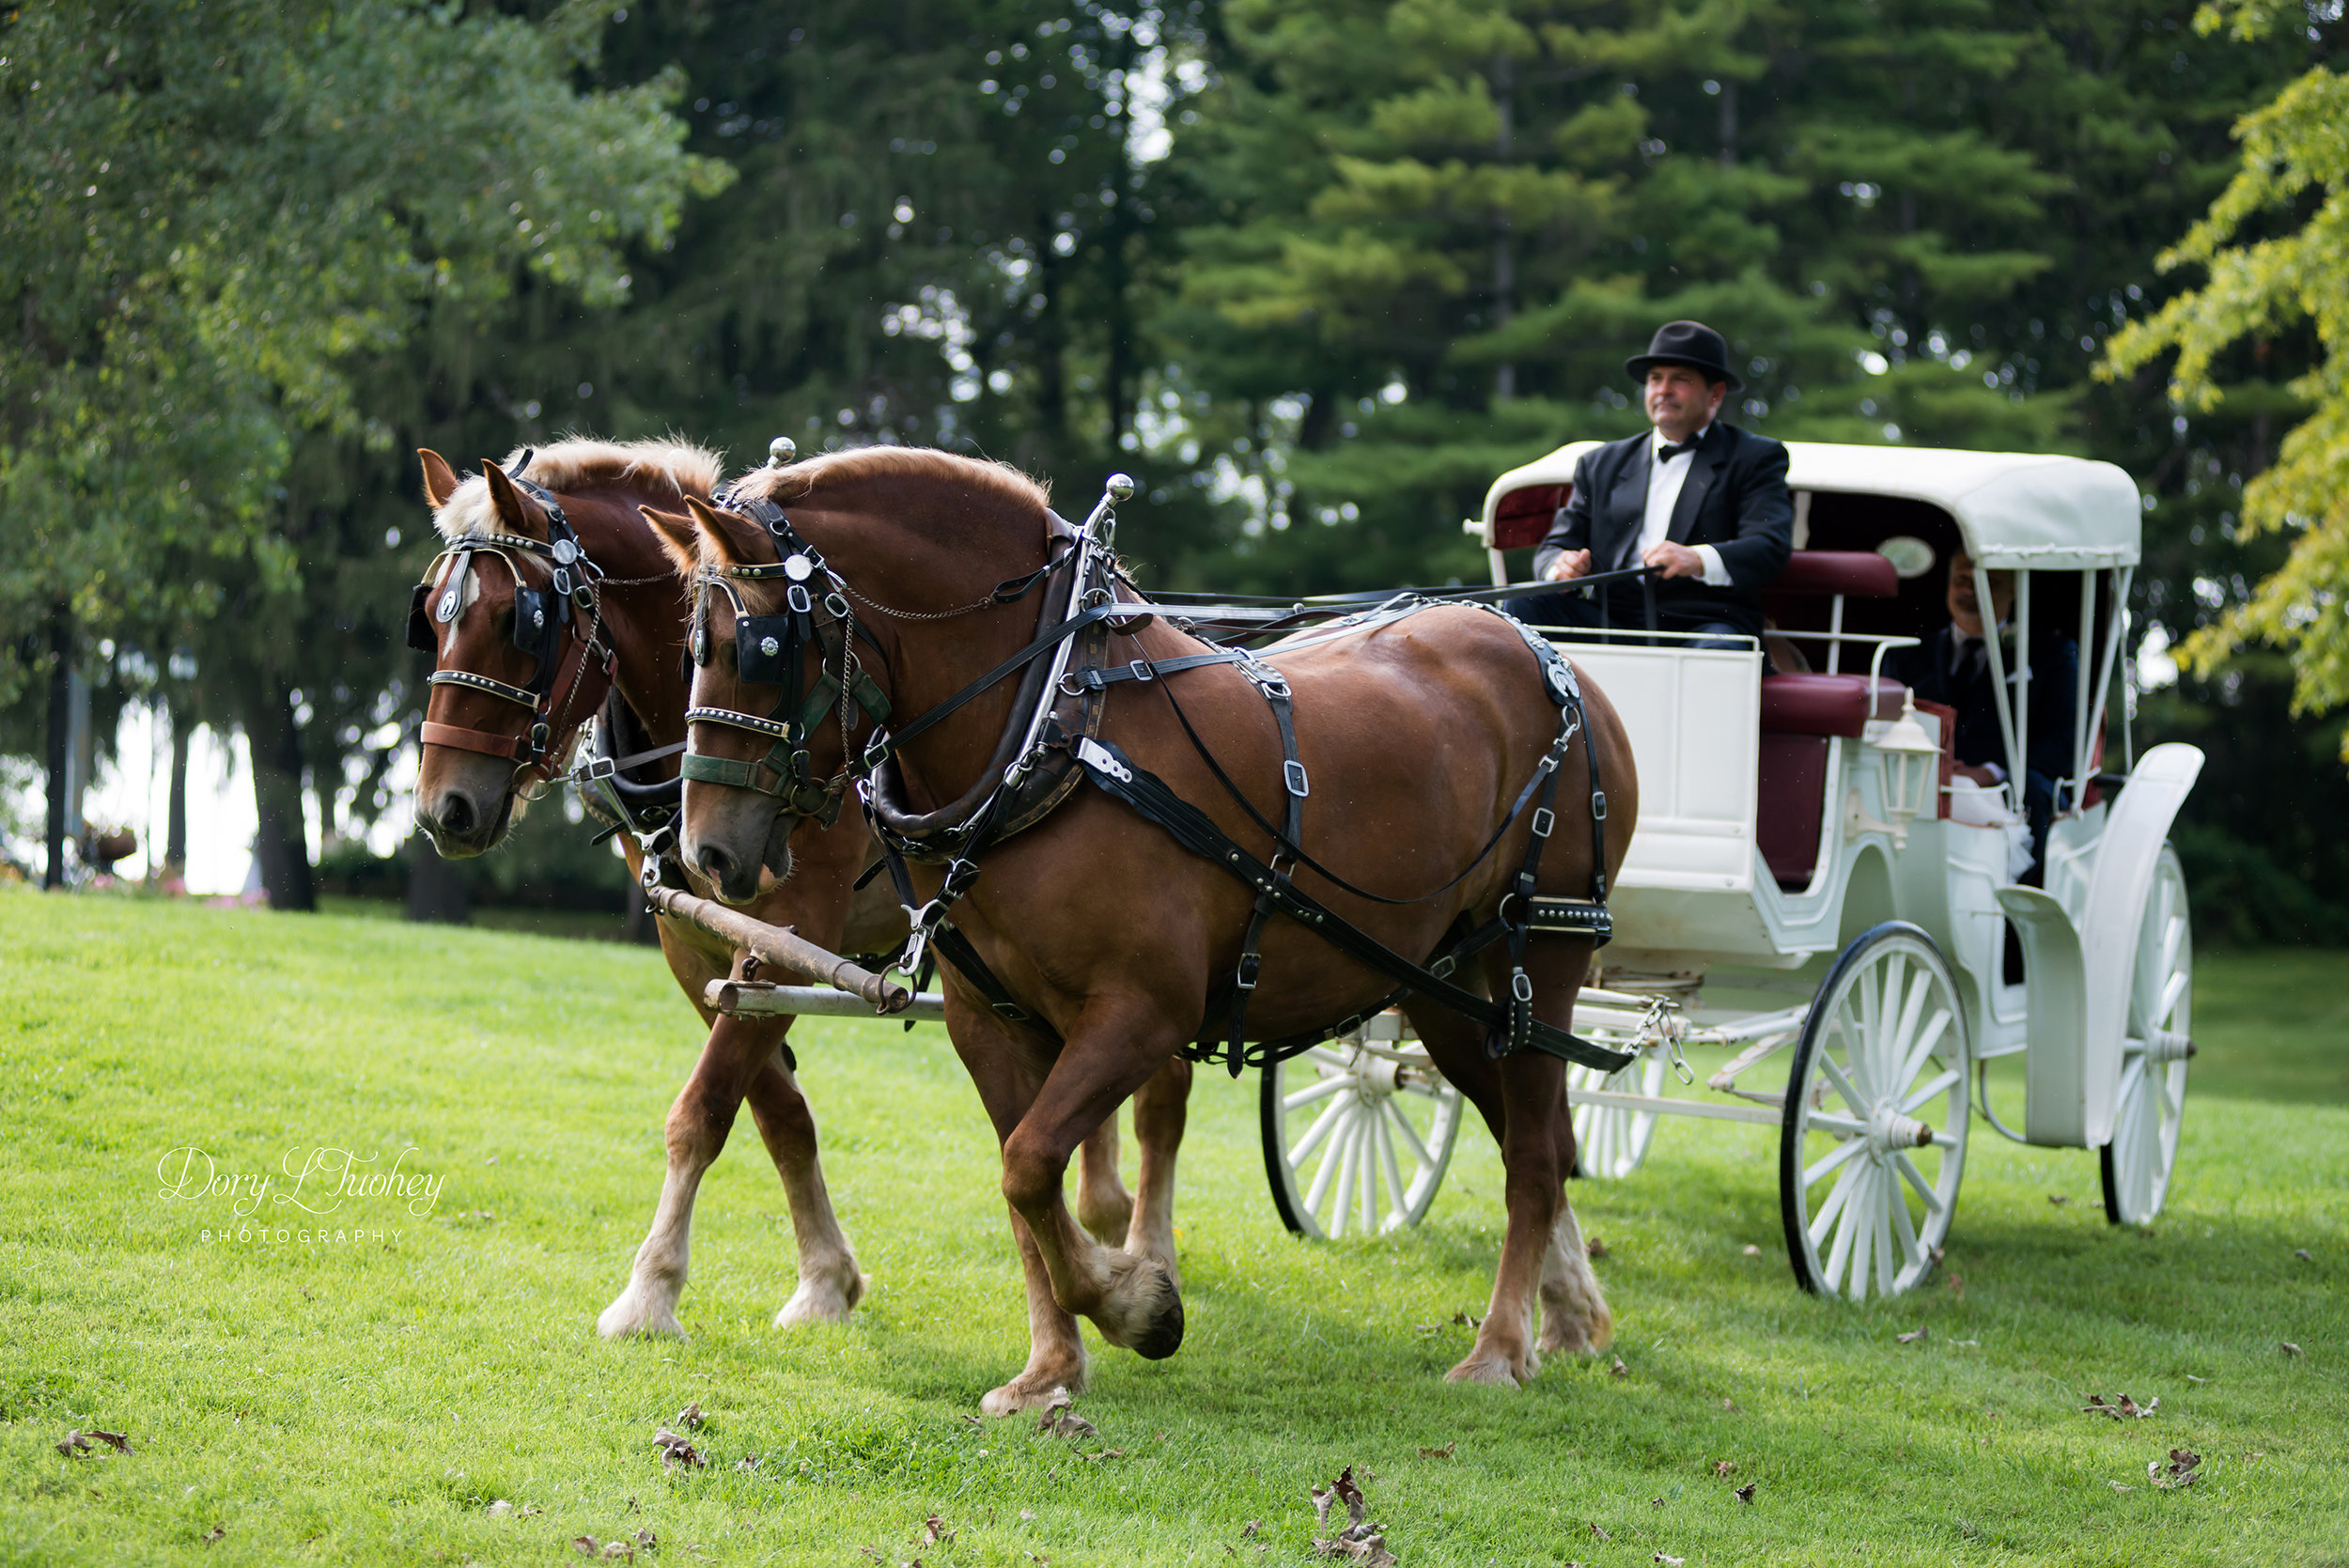 Dory_wedding_farm_country_equestrian_horses_bride_groom_apple_valley_01.jpg